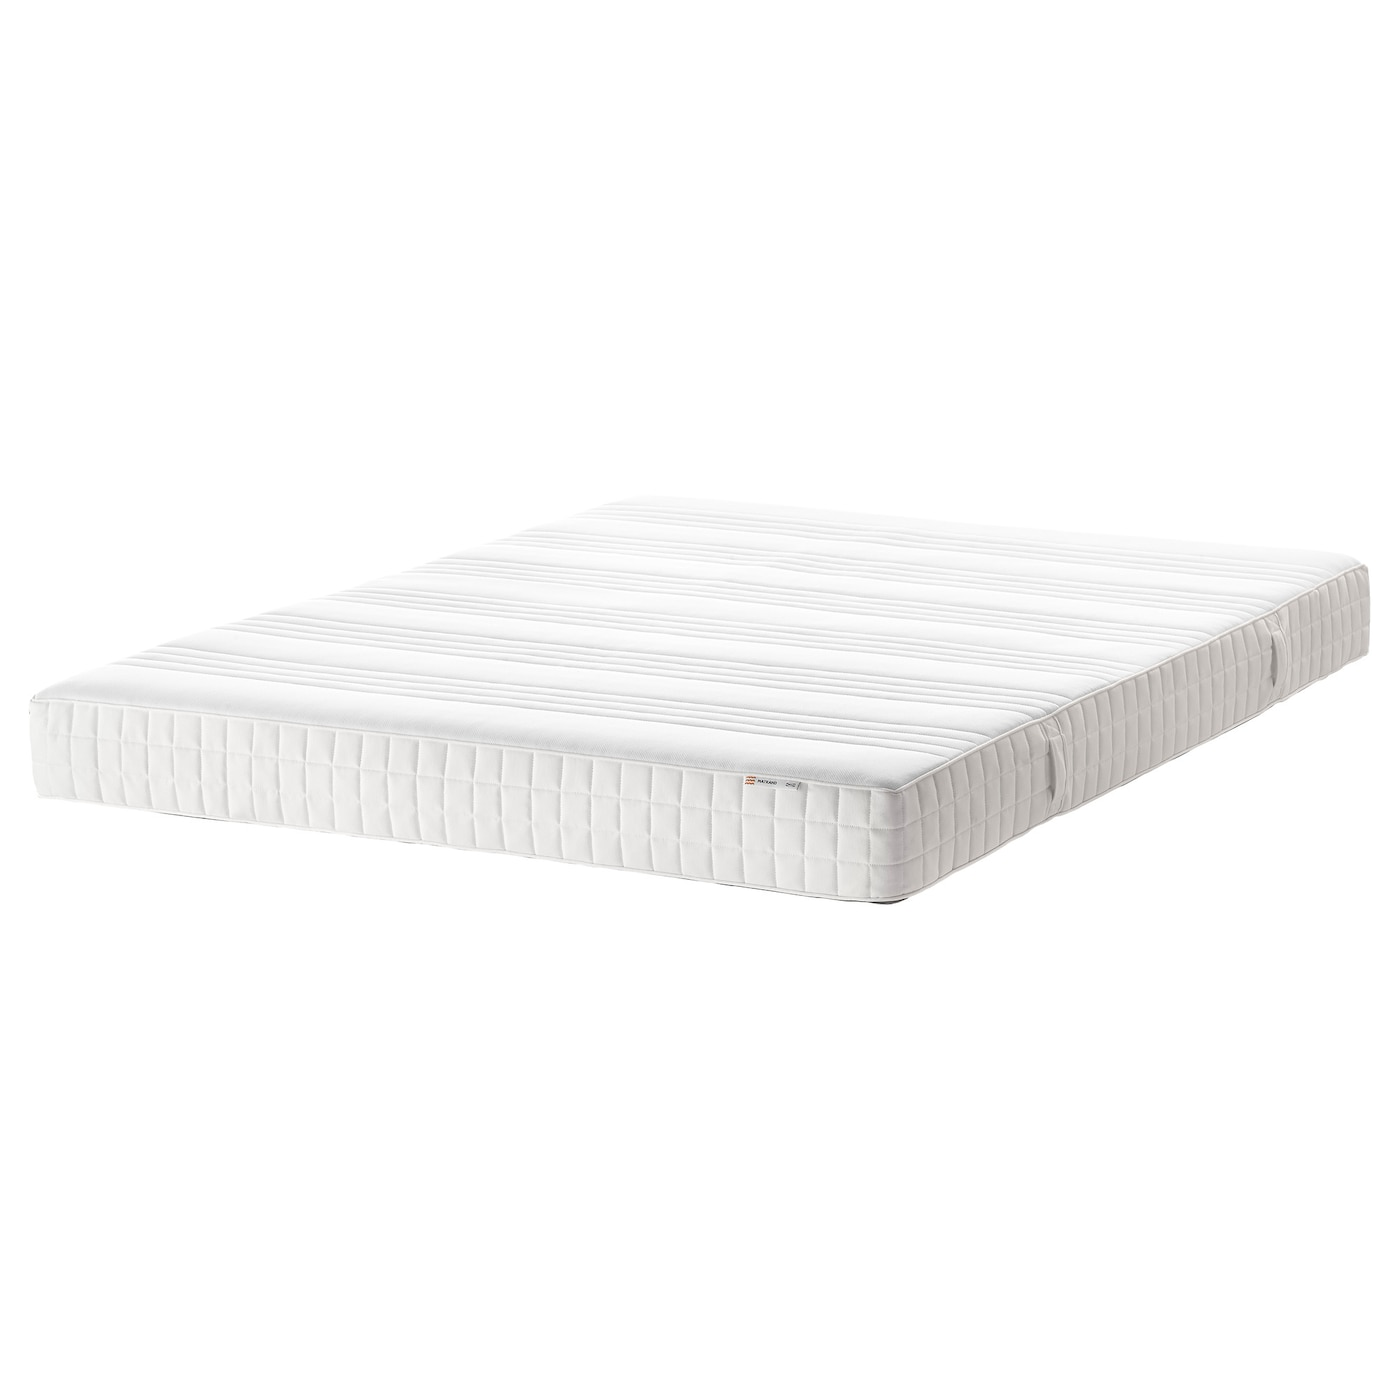 matrand matelas latex mi ferme blanc 140x200 cm ikea. Black Bedroom Furniture Sets. Home Design Ideas